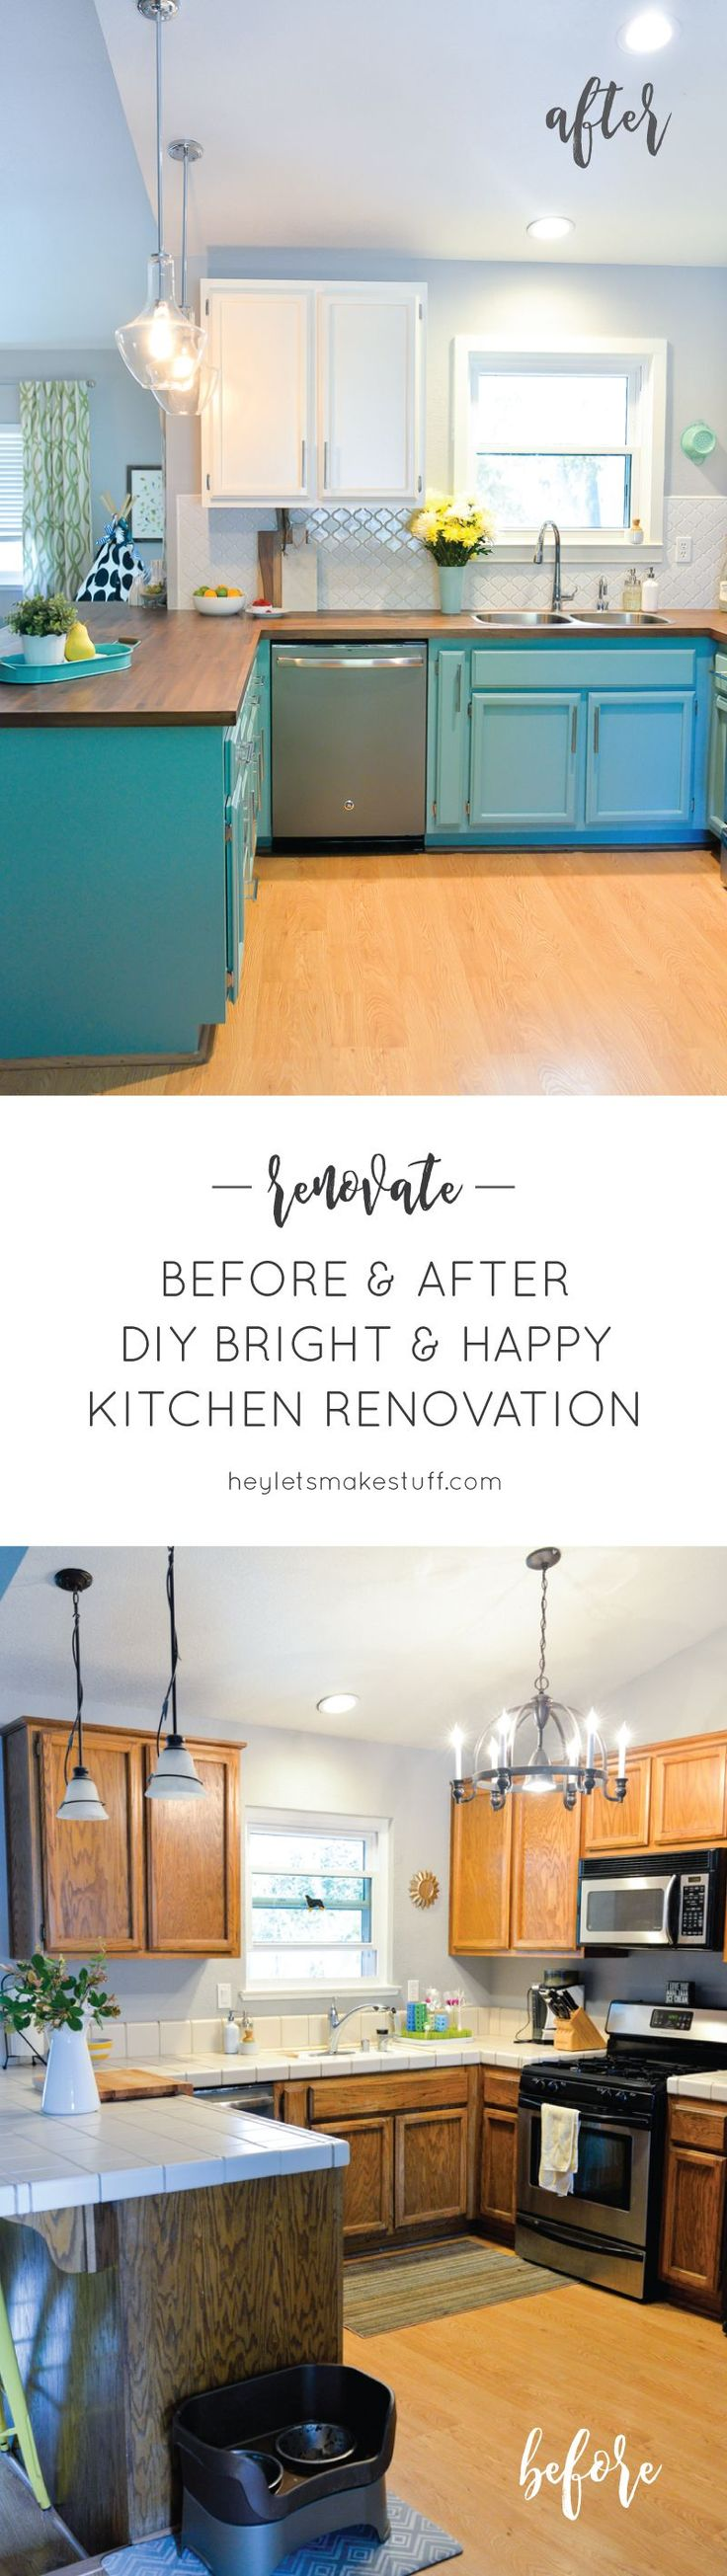 We totally transformed our dated 1980's kitchen with bright painted cabinets…